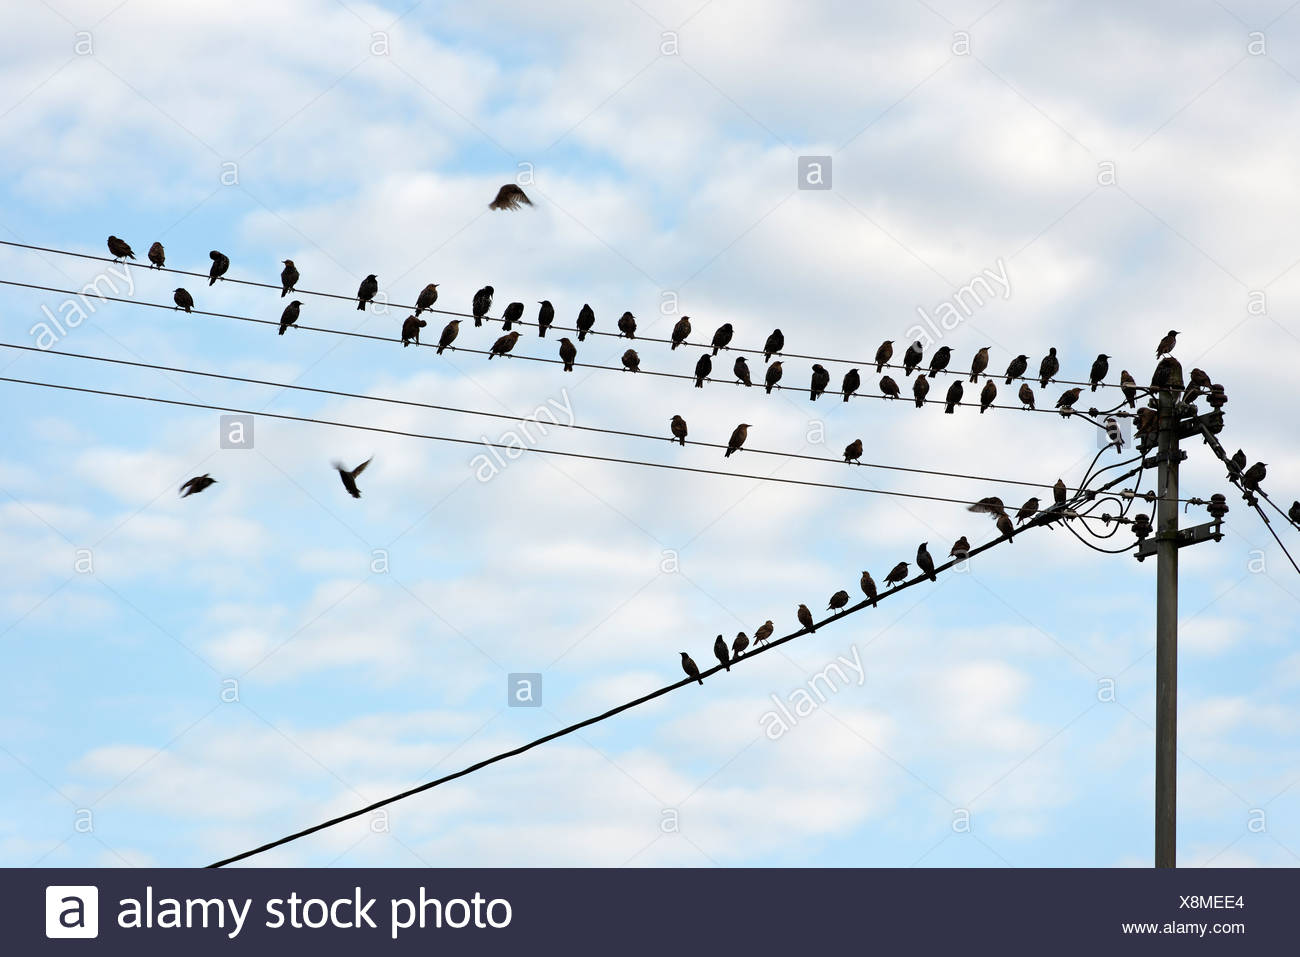 Starlings (Sturnidae) perched on a power line, Upper Bavaria, Bavaria - Stock Image